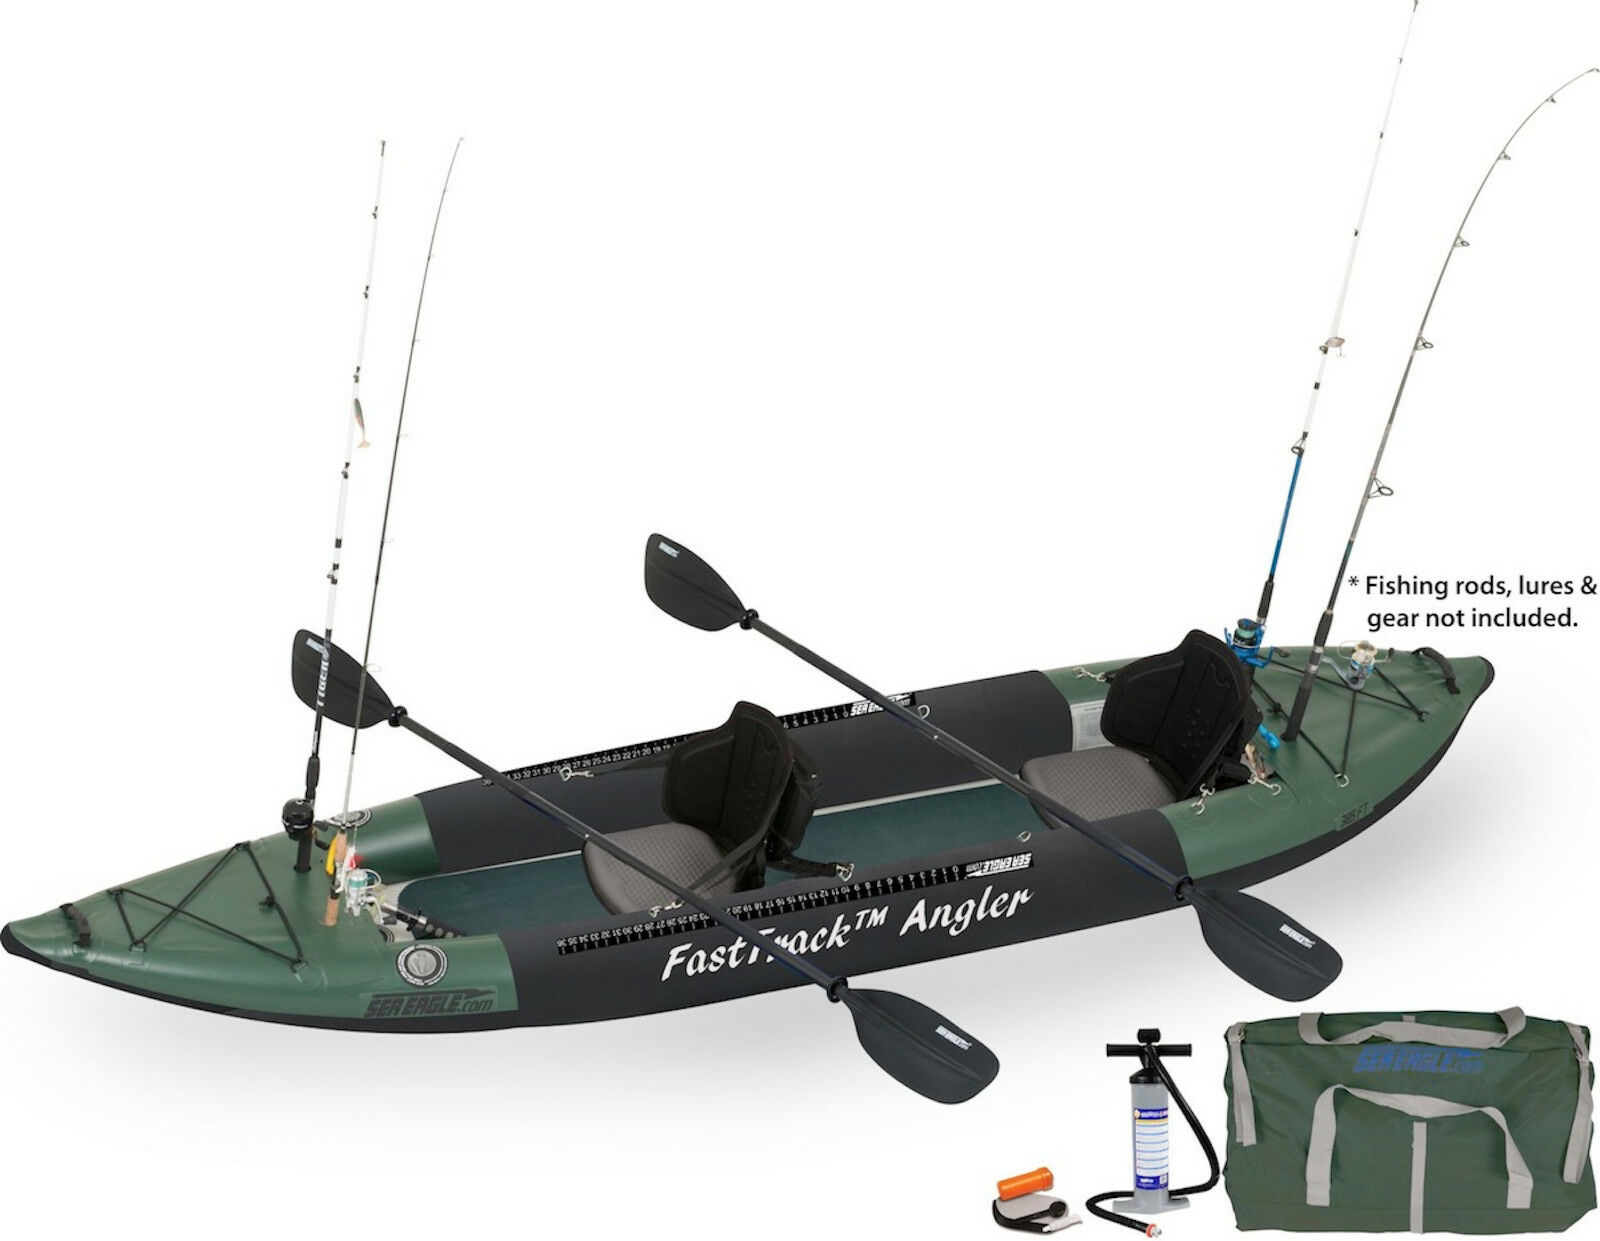 sea eagle 385fta fast track inflatable fishing kayak pro angler package